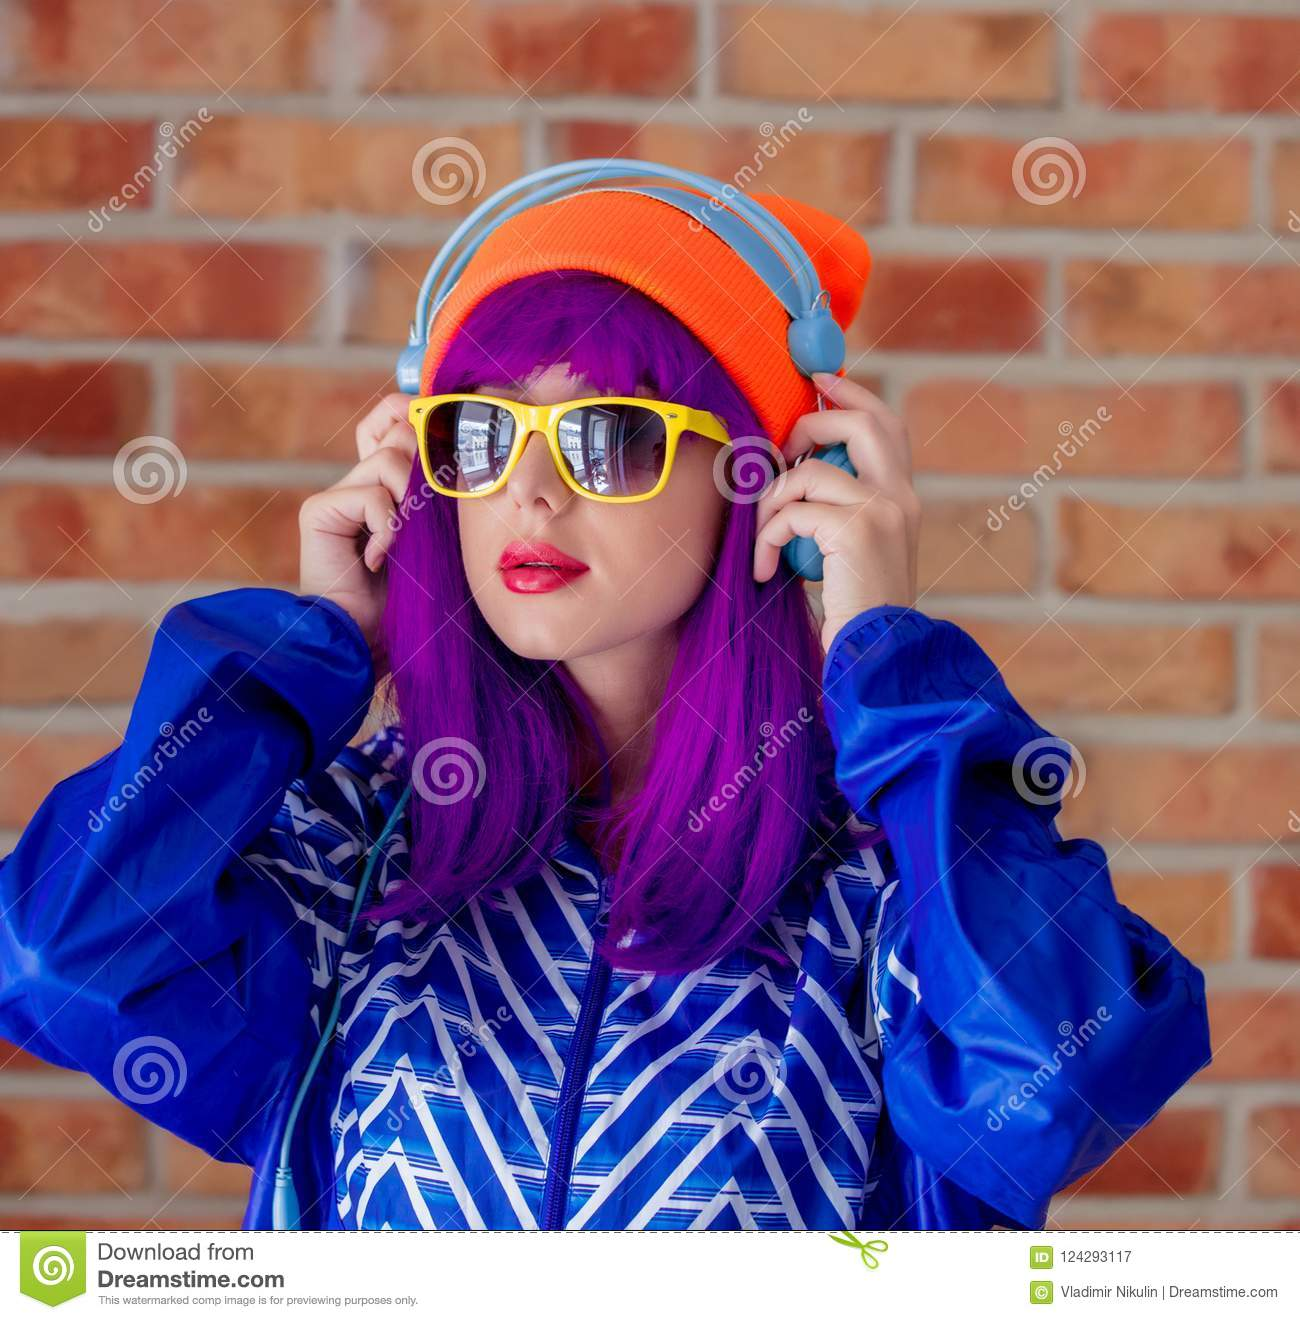 Young girl in 90s sports jacket and hat